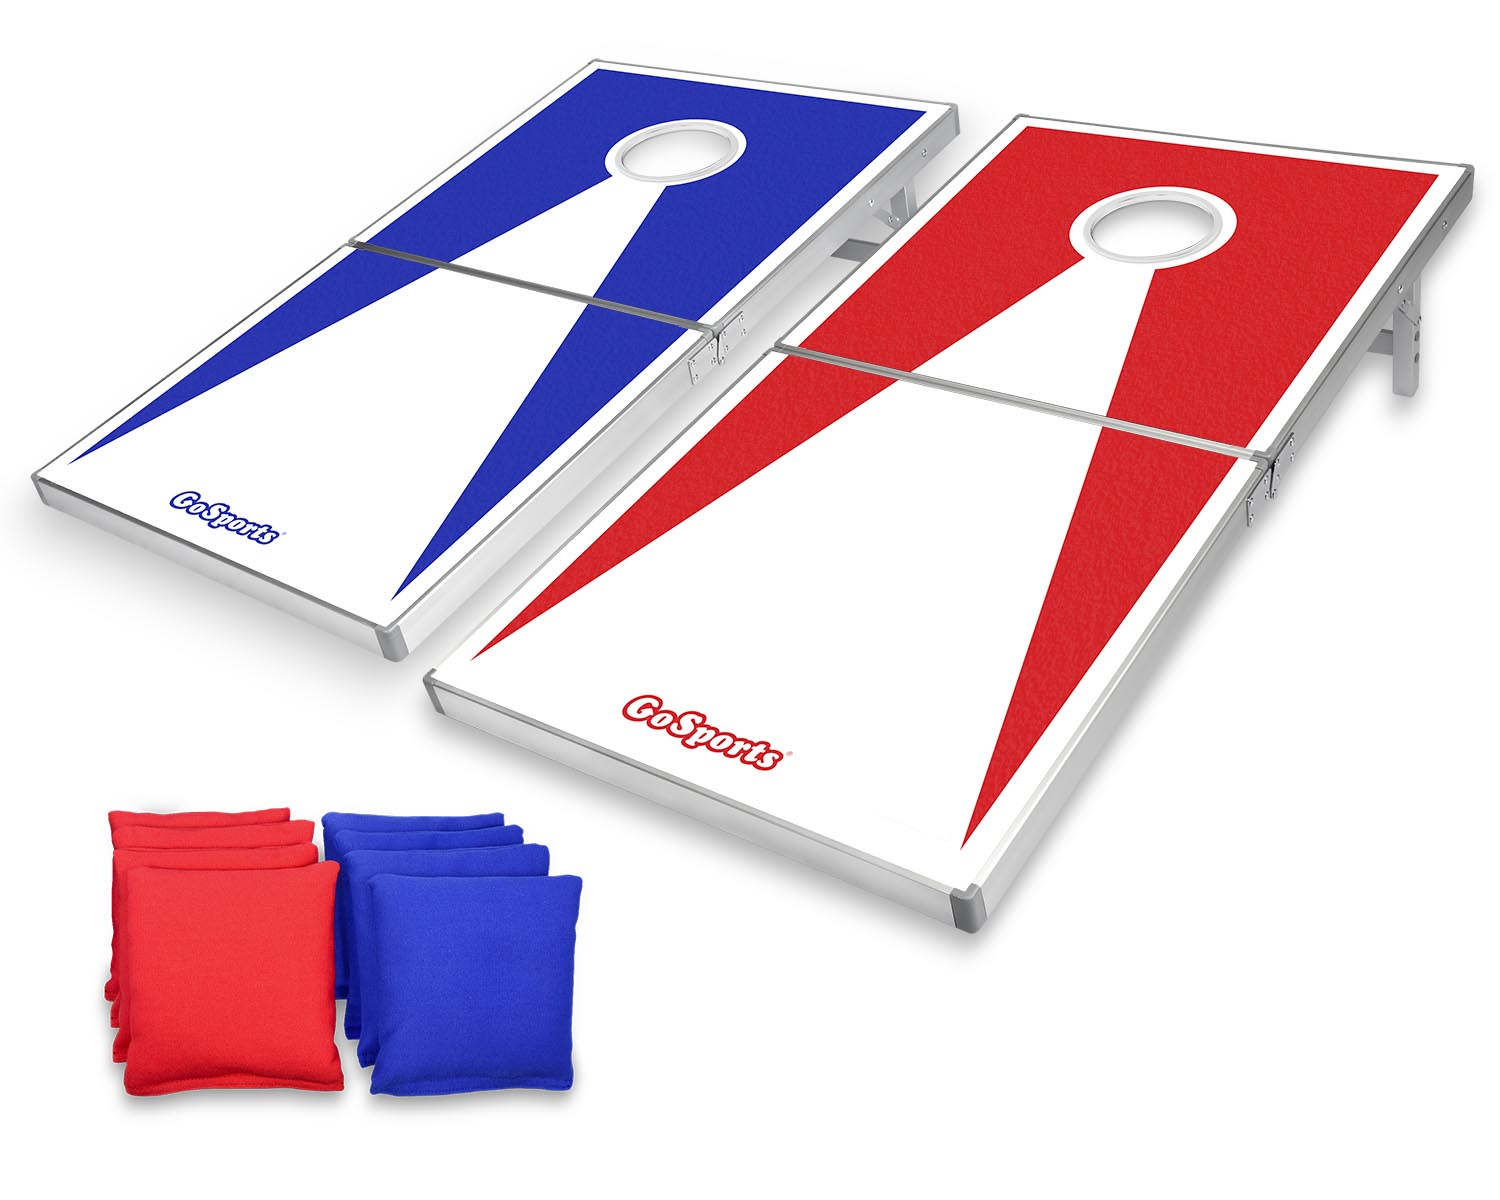 Click here to buy GoSports Foldable Cornhole Boards PRO Regulation Size Portable Beanbag Toss Game Set, Superior Aluminum Frame, Red and... by P&P Imports LLC.